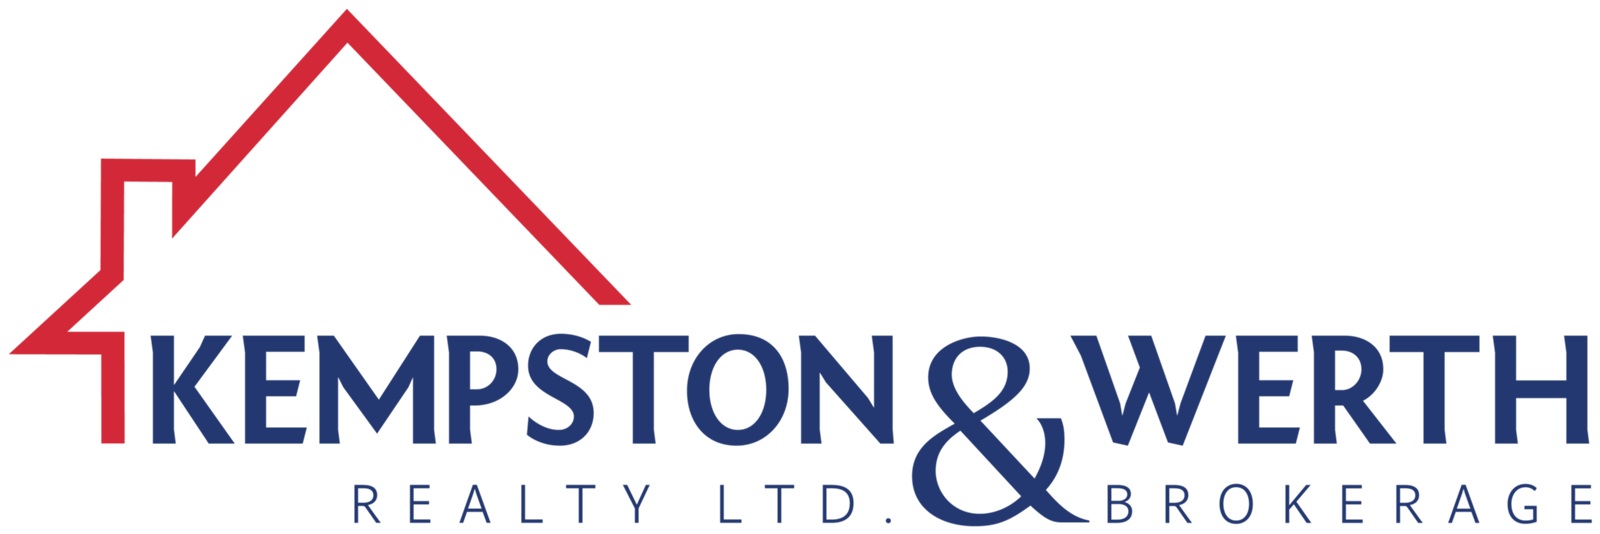 Kempston & Werth Realty Ltd. logo